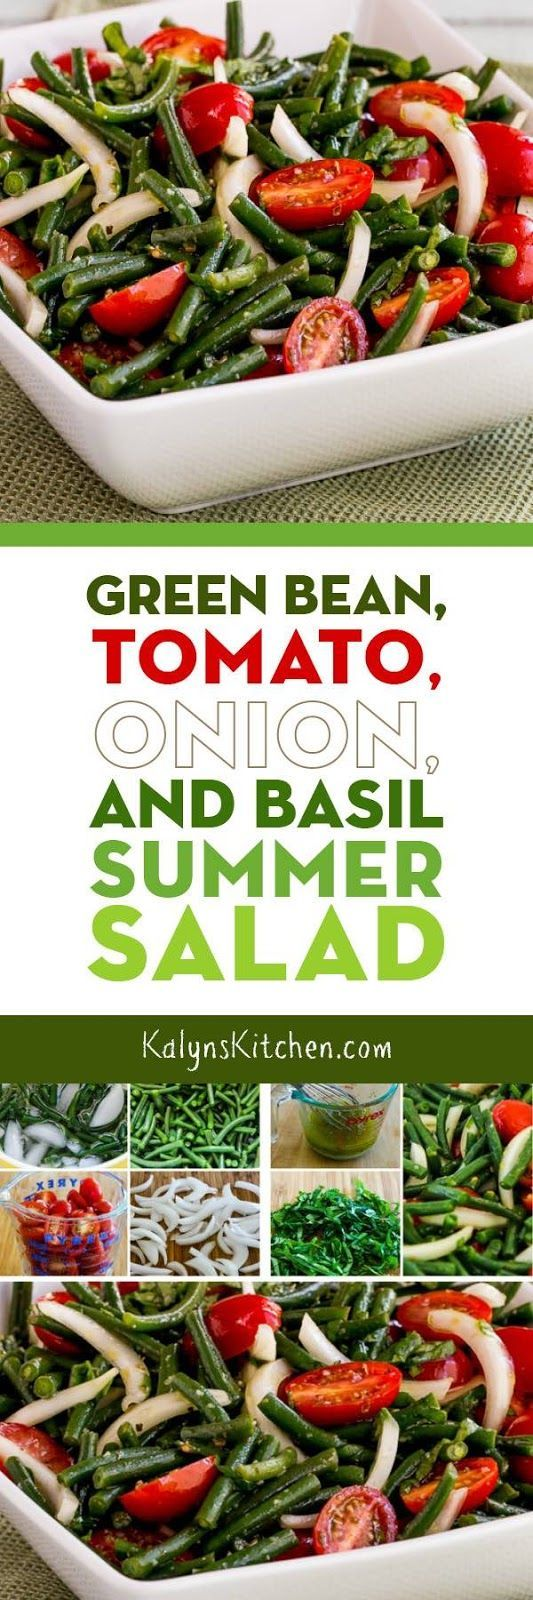 Seriously, this Green Bean, Tomato, Onion, and Basil Summer Salad was SO AMAZING! And this wonderful salad is low-carb, gluten-free, dairy-free, vegan, Paleo, Whole 30, and South Beach Diet friendly, so I'd say that makes it perfect for just about everyone! And if you like fresh green beans and tomatoes this is a must-make salad for summer. [found on KalynsKitchen.com.]